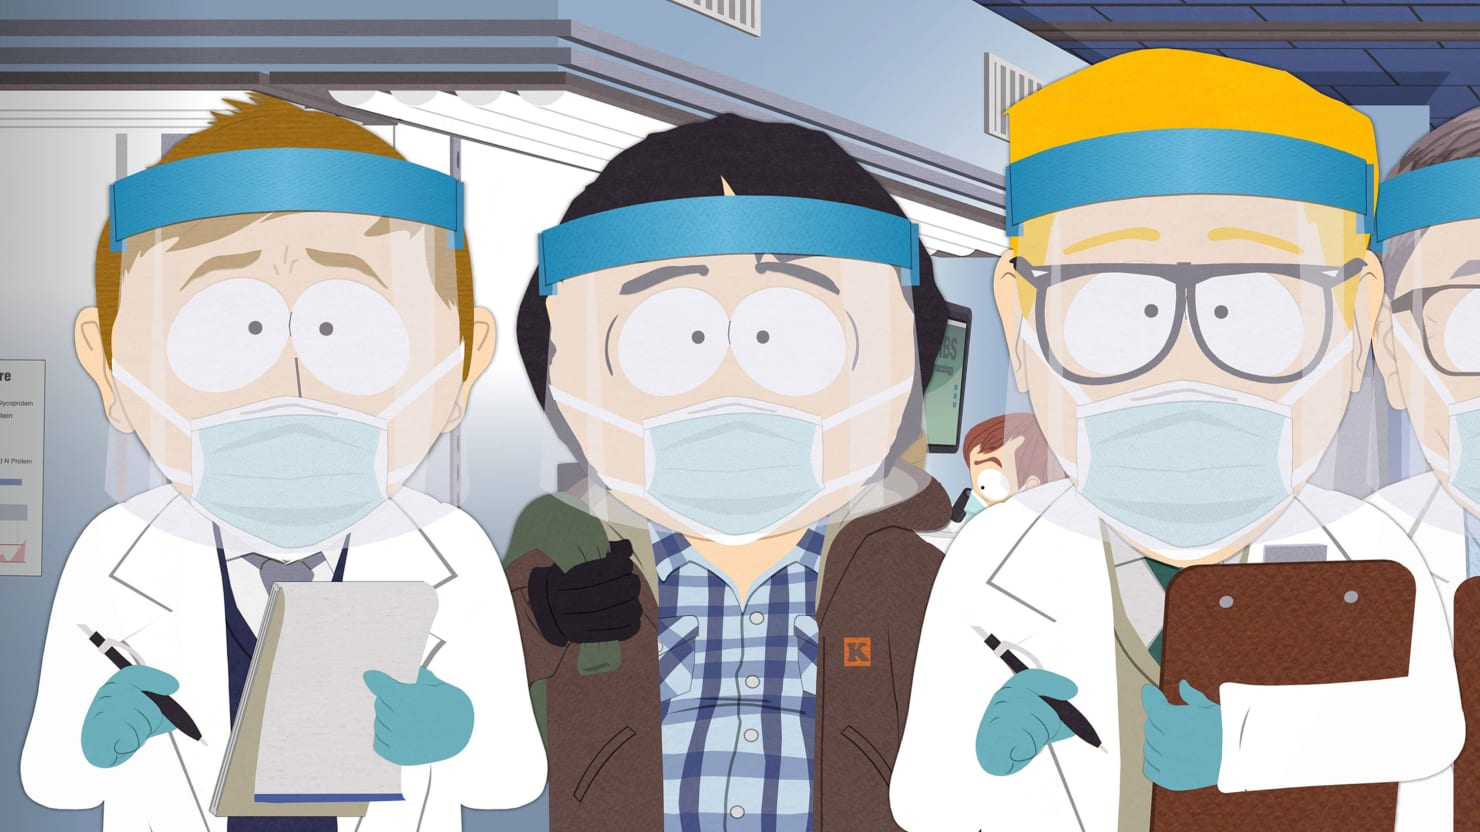 'South Park' Breaks the Fourth Wall With a Rare Plea for People to Vote